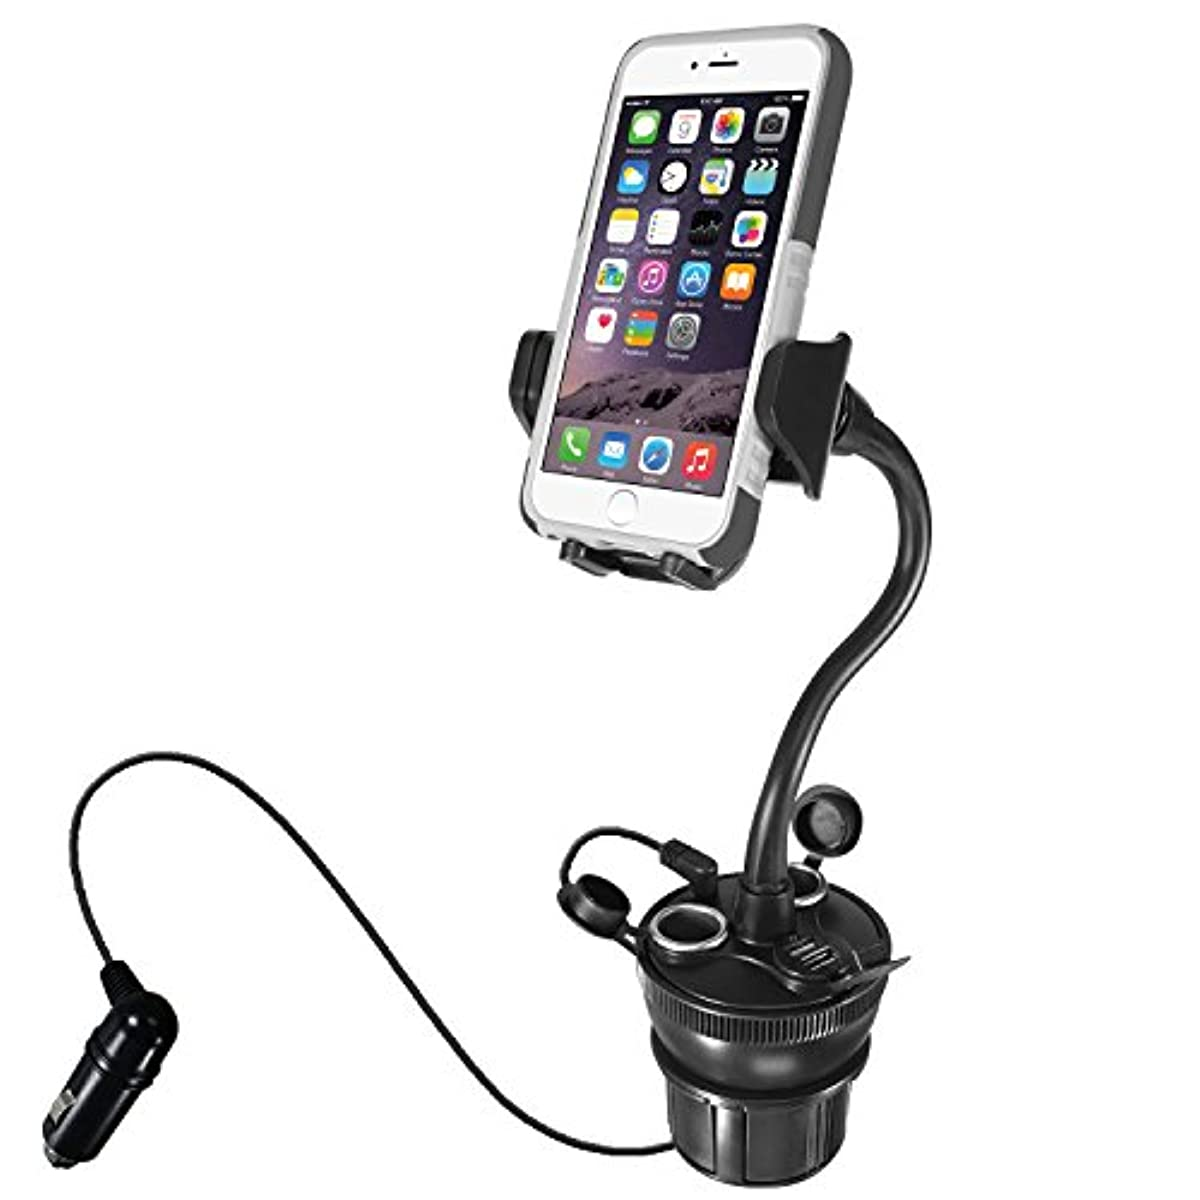 Details about Macally Car Cup Holder Phone Mount with Two High Powered USB  Charging Ports 4 2A